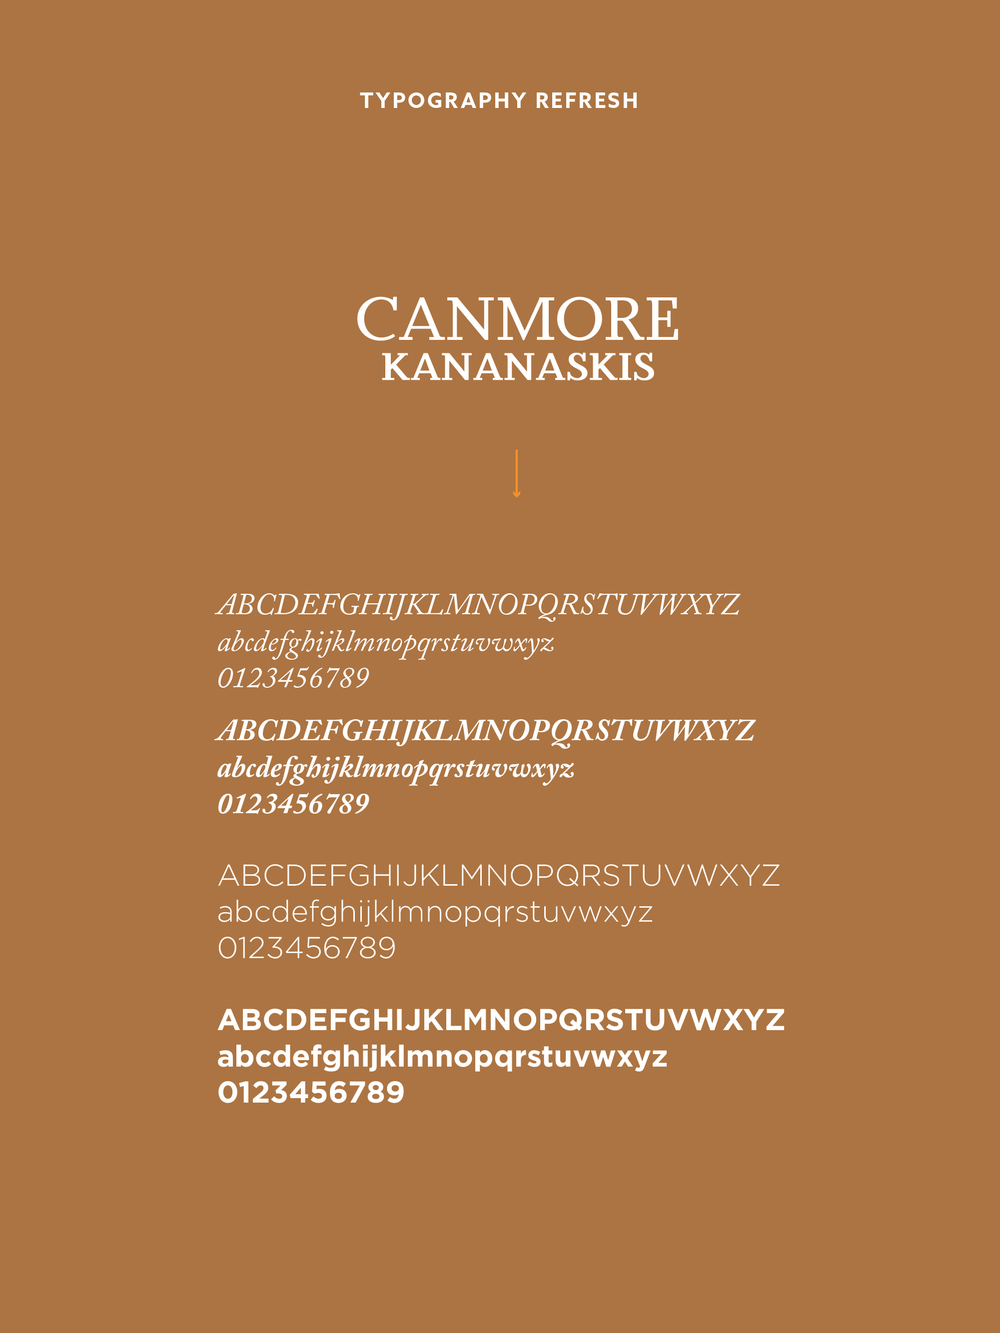 Tourism Canmore Kananaskis Logo + Typography | Trout + Taylor www.troutandtaylor.com